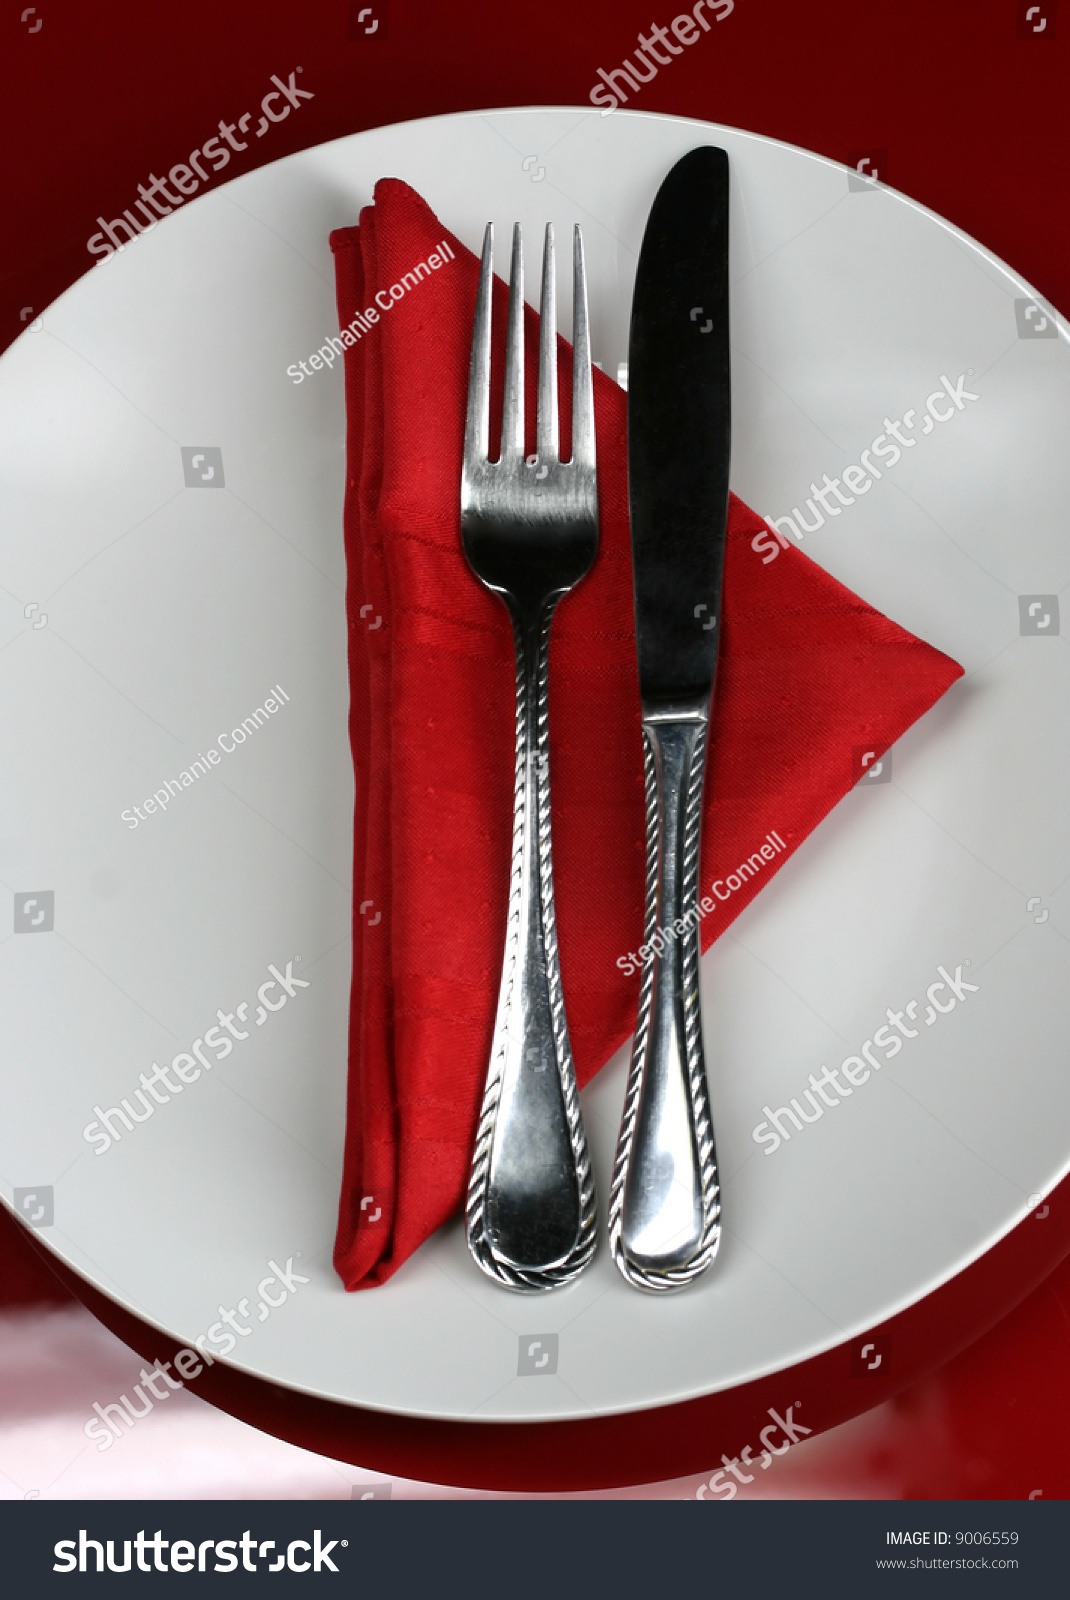 Modern restaurant table setting - A Modern Restaurant Table Setting In Red Preview Save To A Lightbox